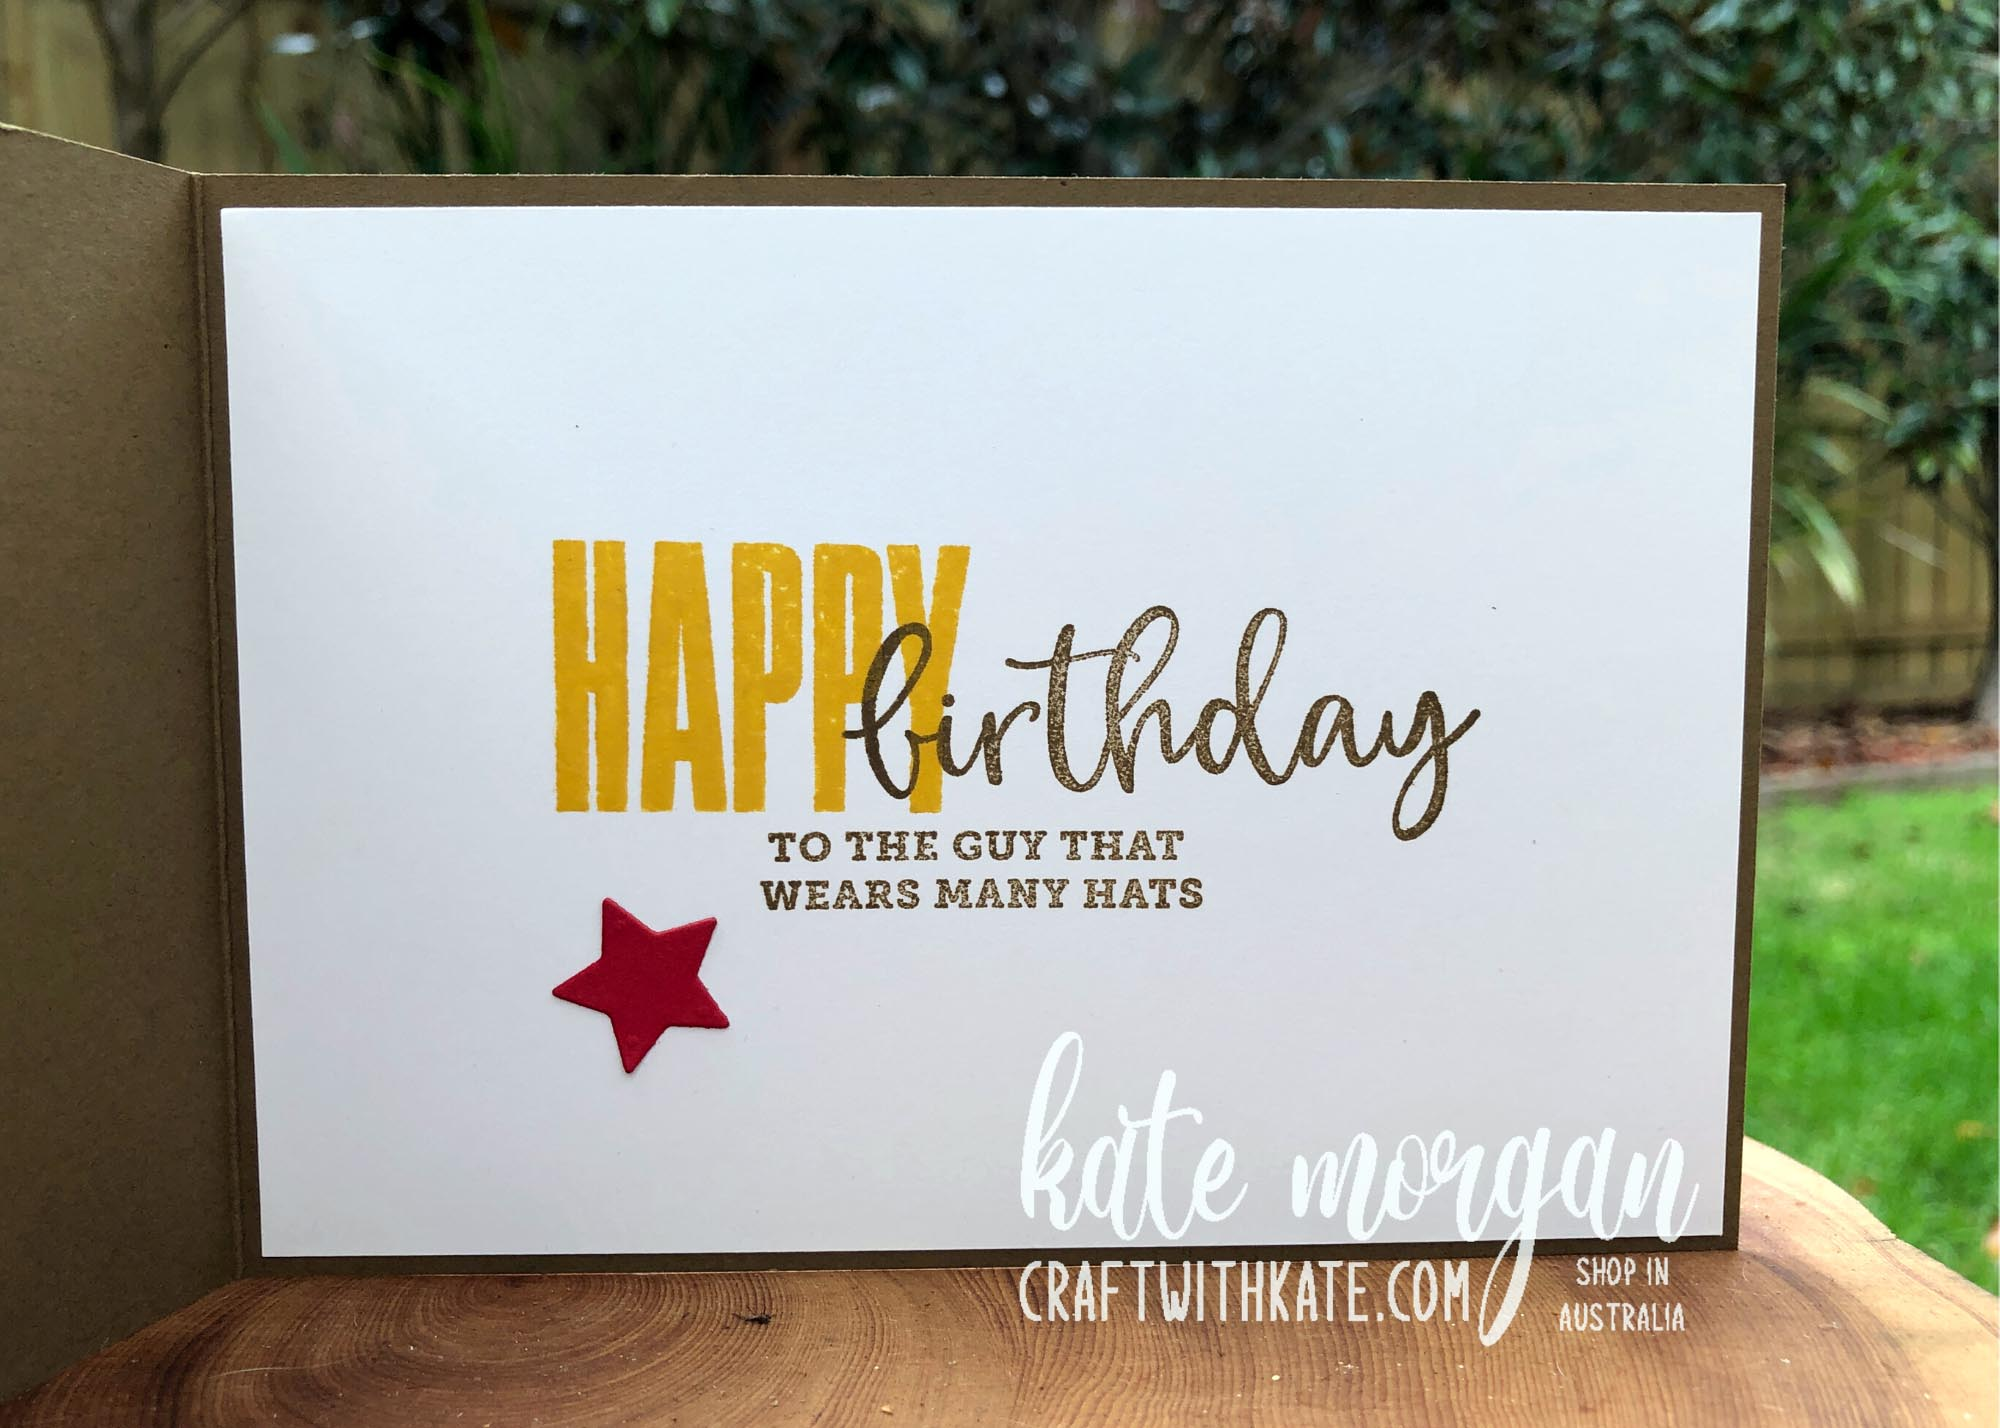 Hats Off & Biggest Wish, Stampin Up by Kate Morgan, Australia 2021 Colour Creations Showcase